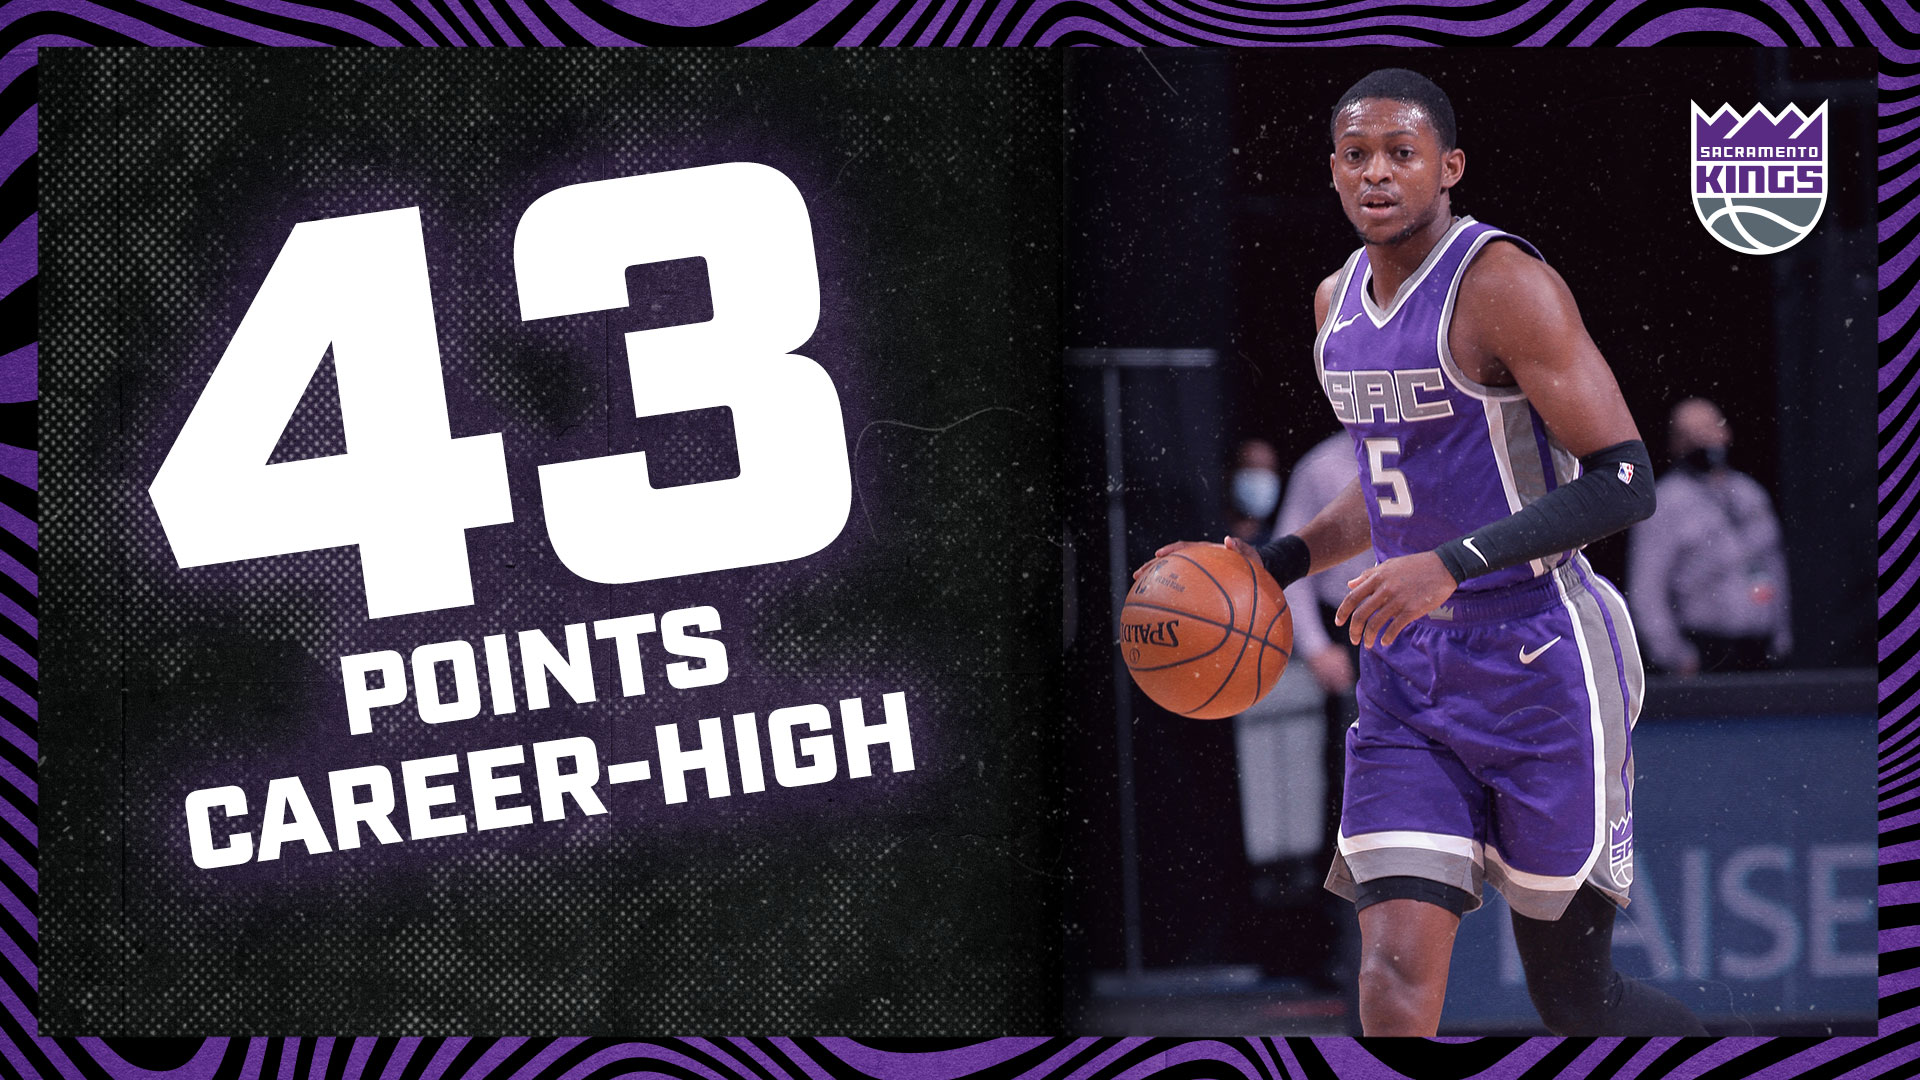 De'Aaron Fox notched a new CAREER-HIGH 43 POINTS | Kings vs Pelicans 1.17.20